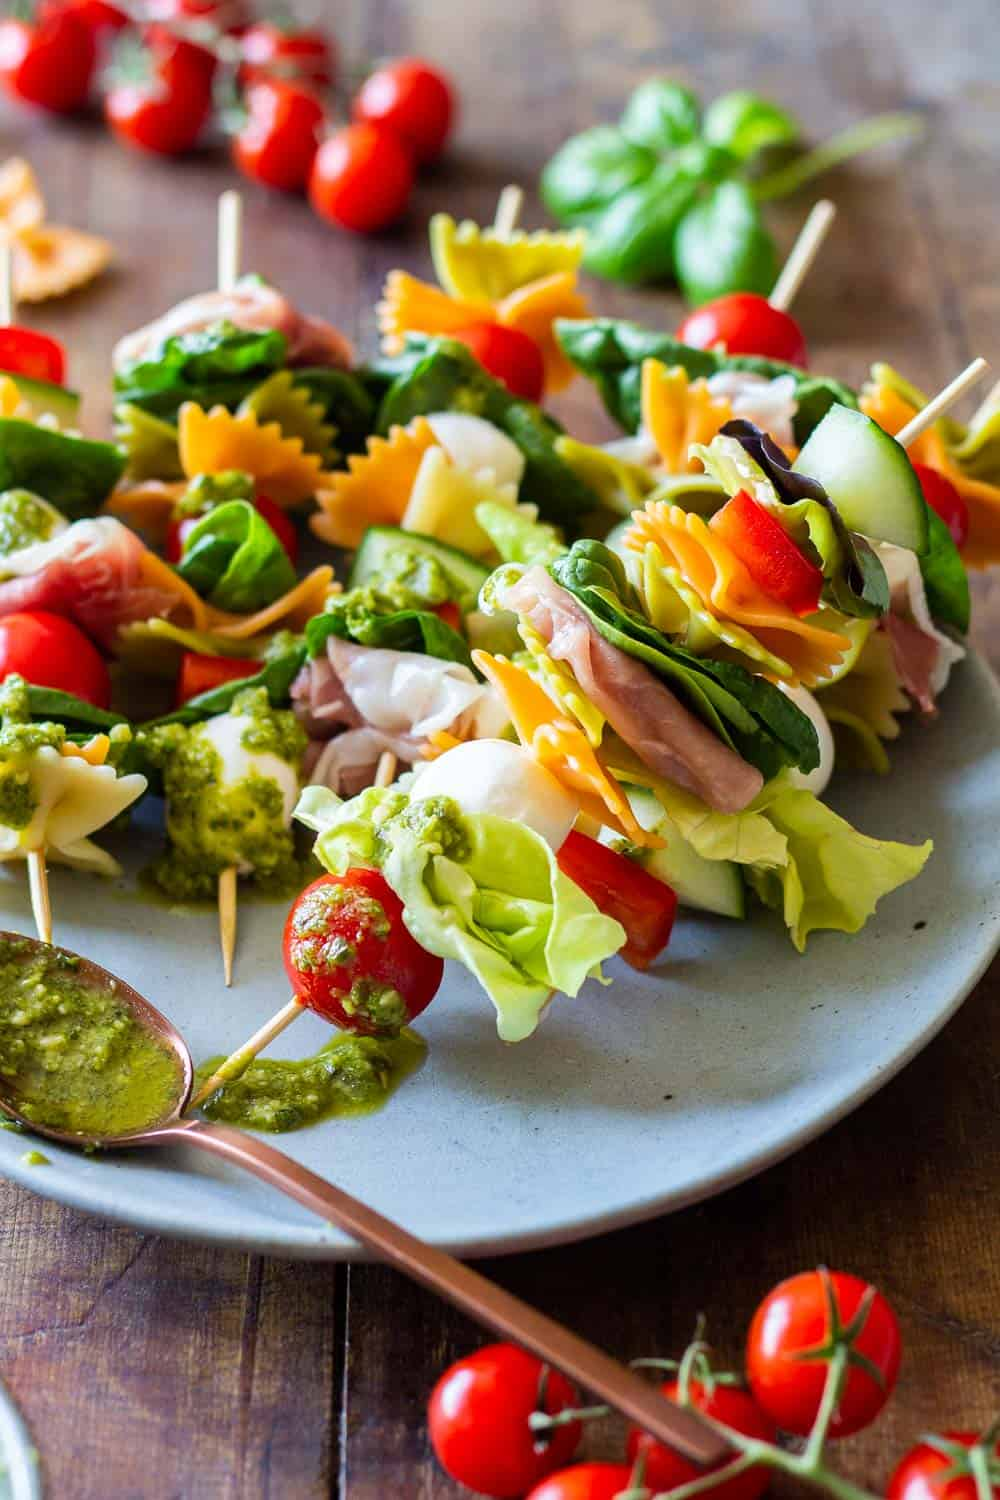 Antipasto Appetizer Skewers arranged on a plate and green pesto on a spoon